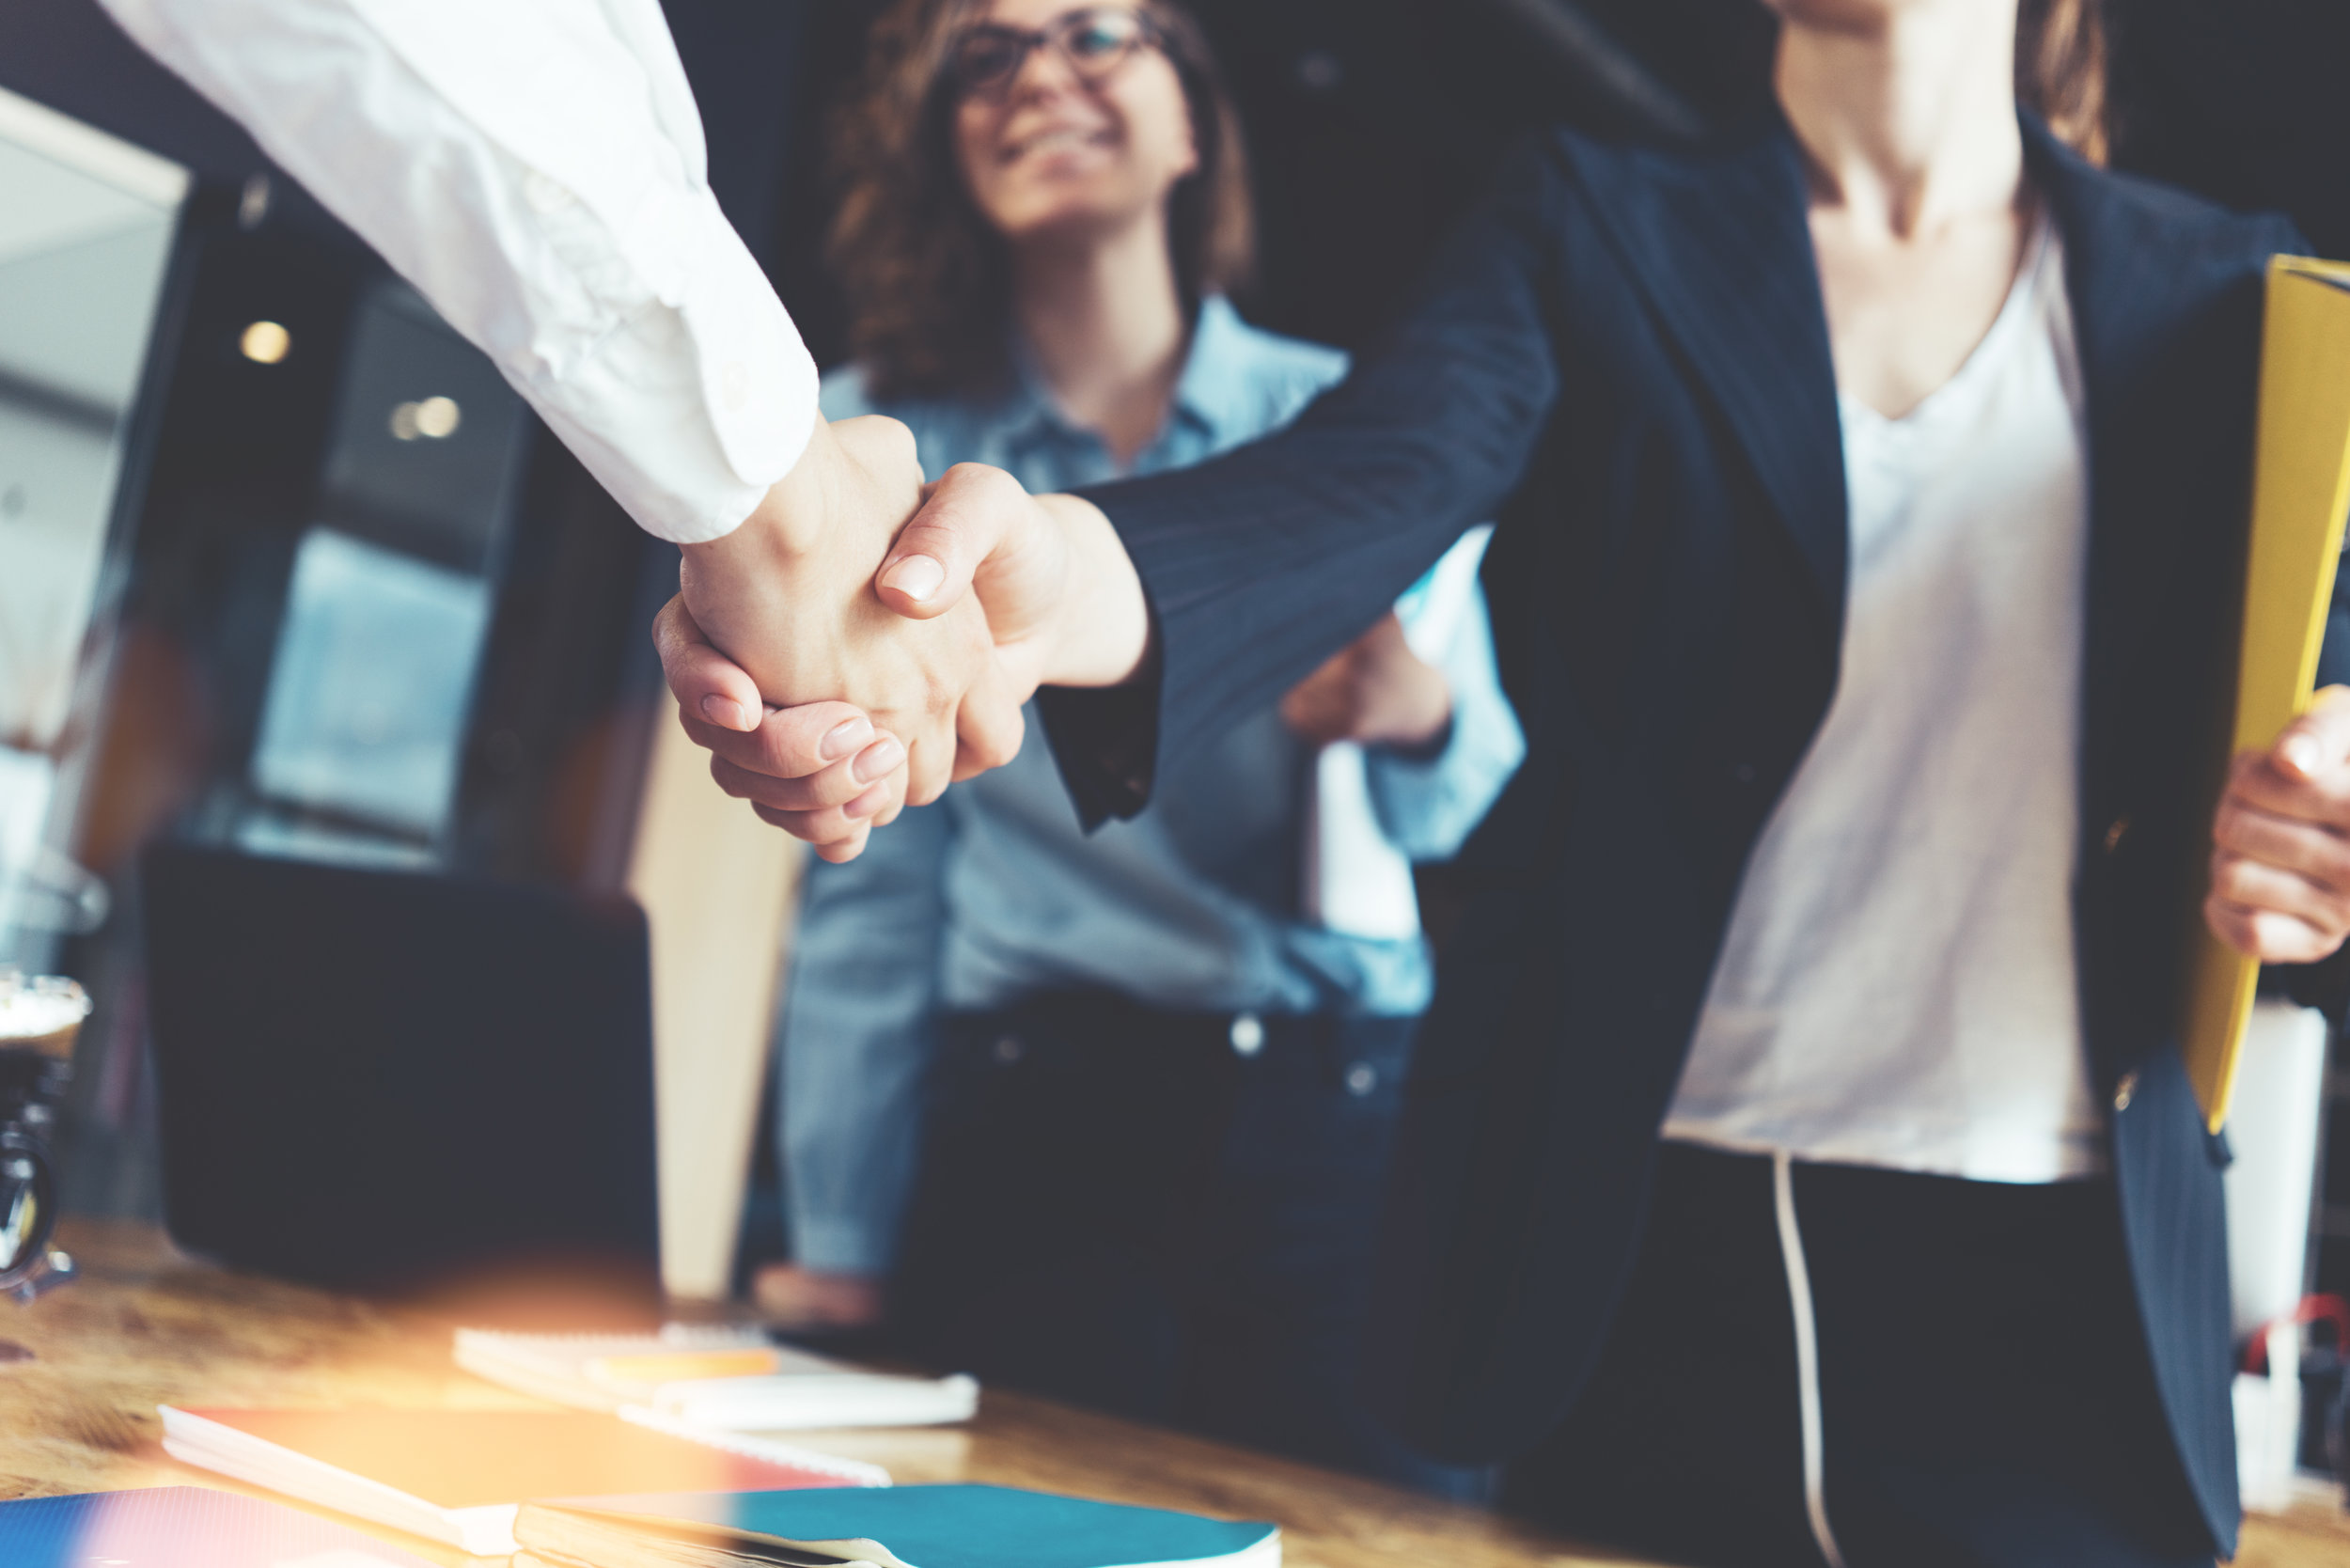 oung business people shaking hands in the office. Finishing successful meeting. AdobeStock_158504099.jpeg